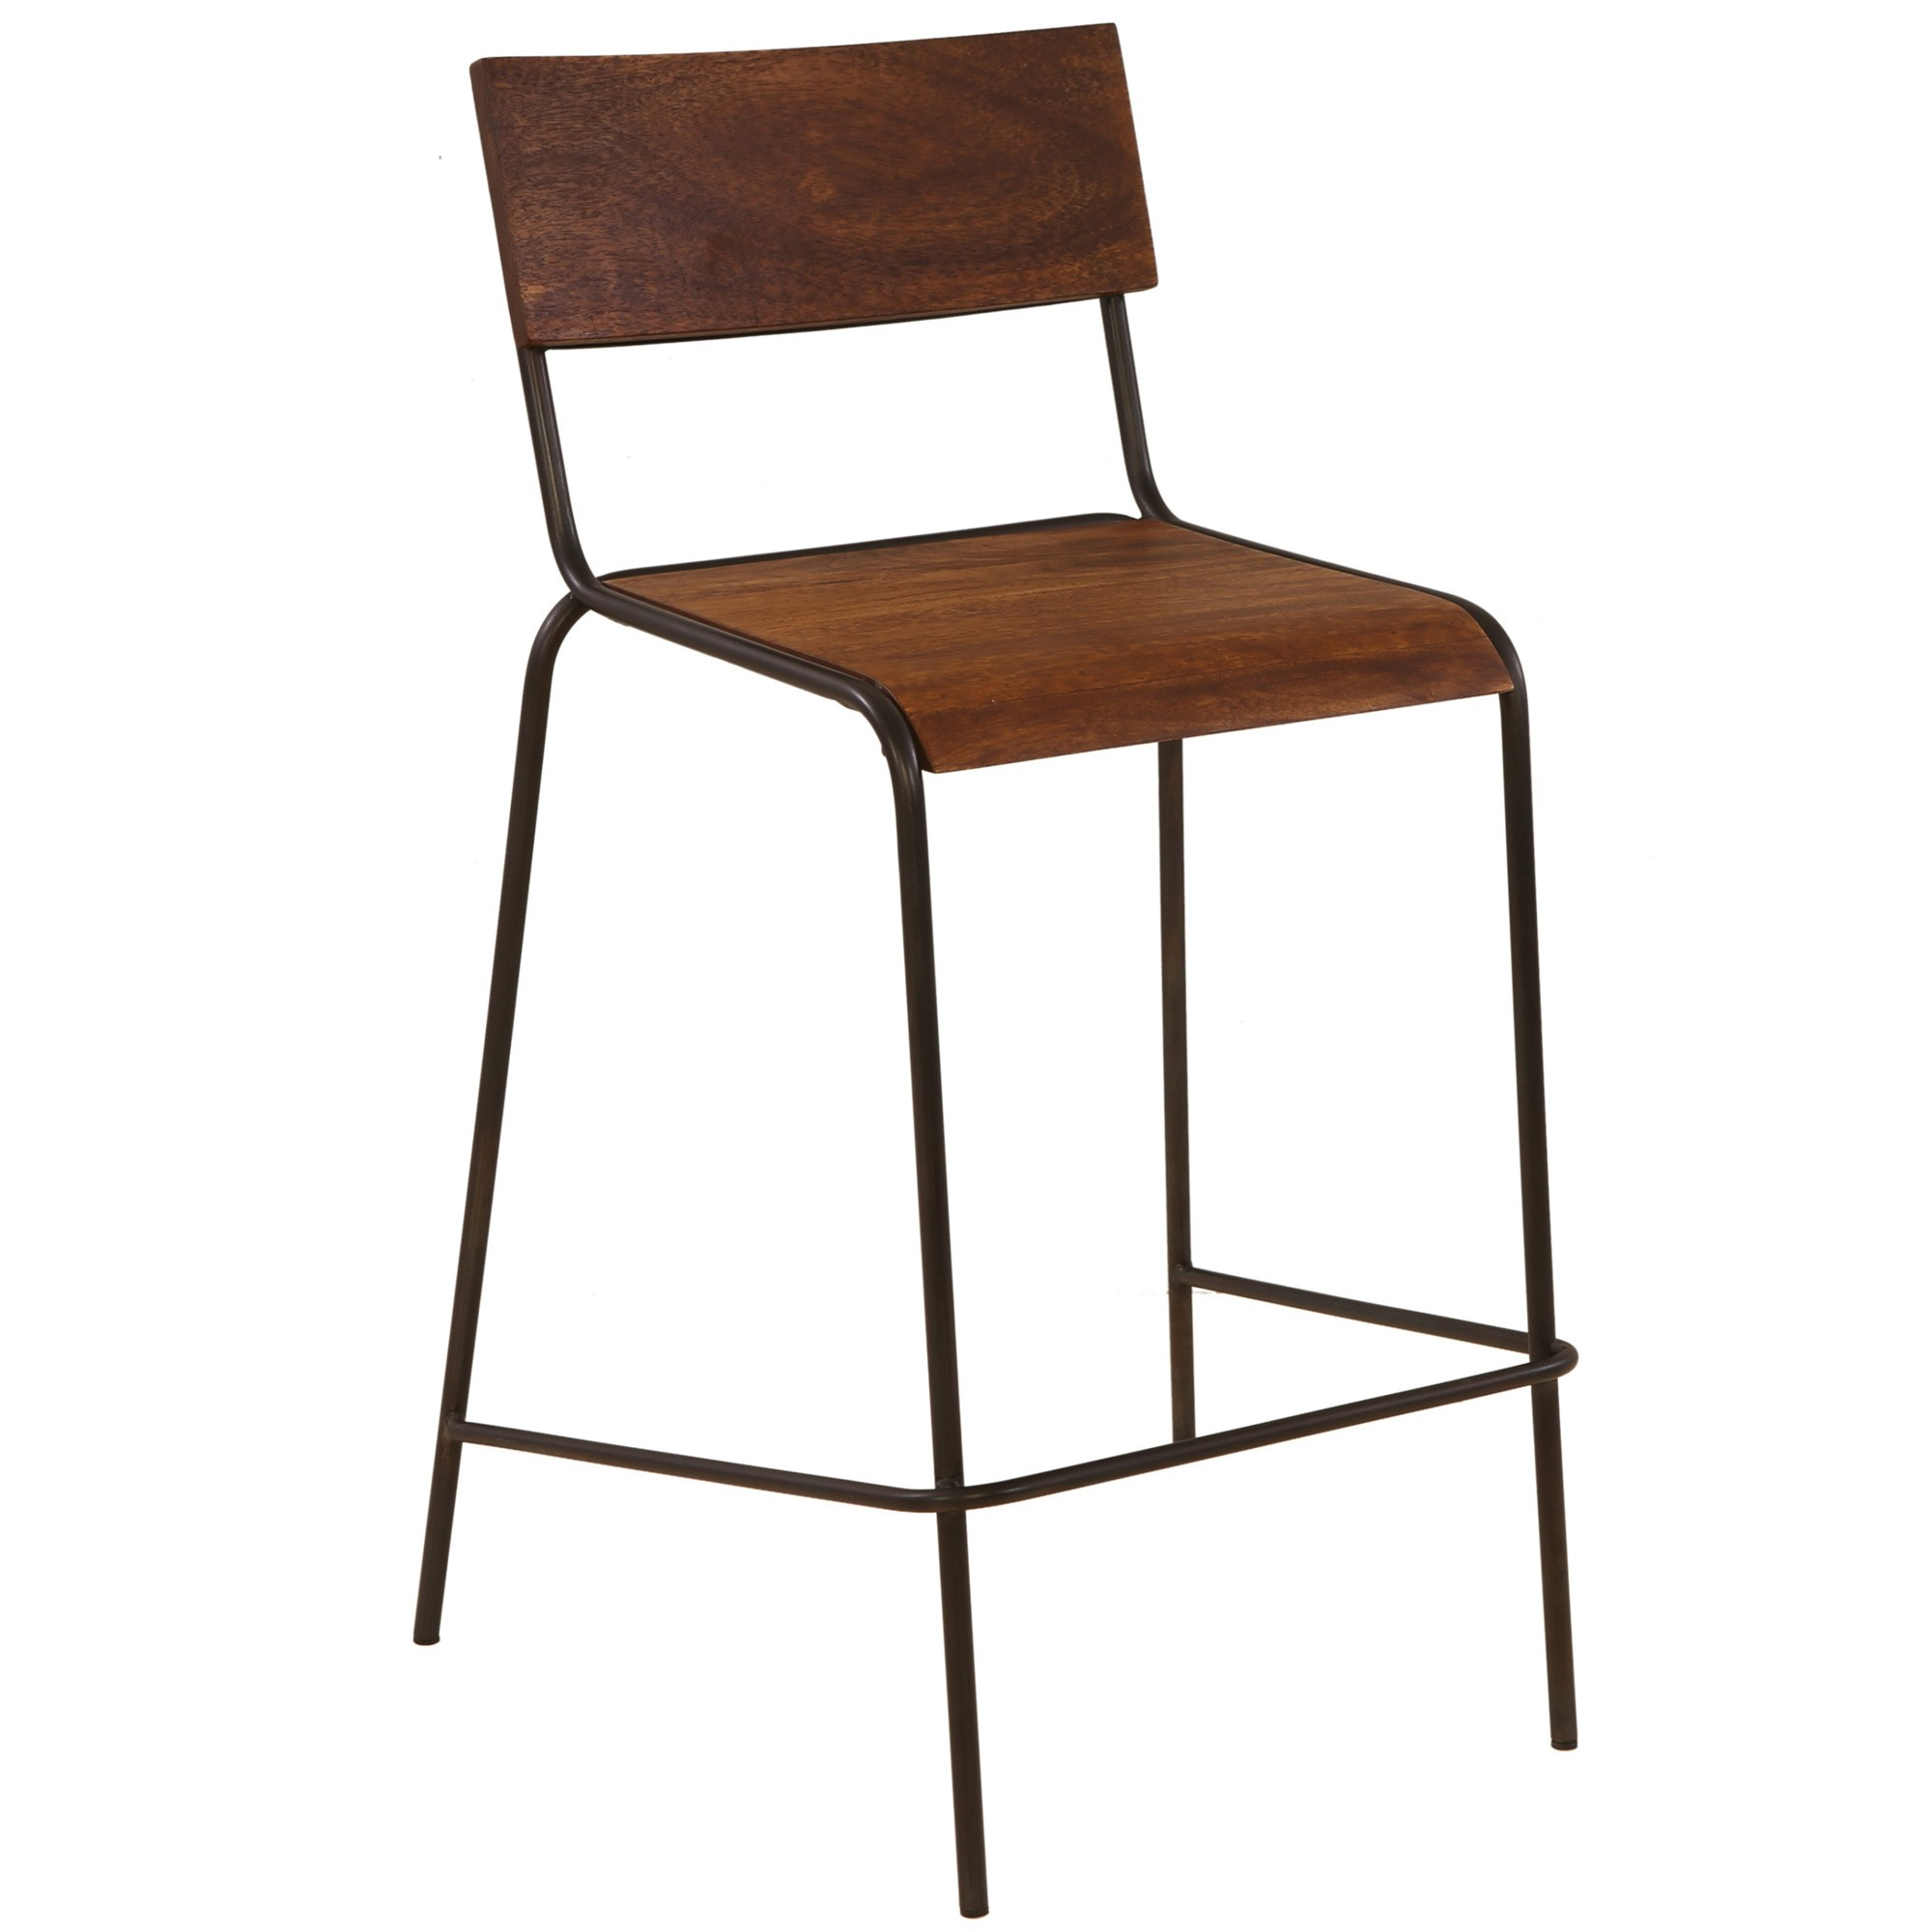 Hemsworth Commercial Grade Metal Counter Stool